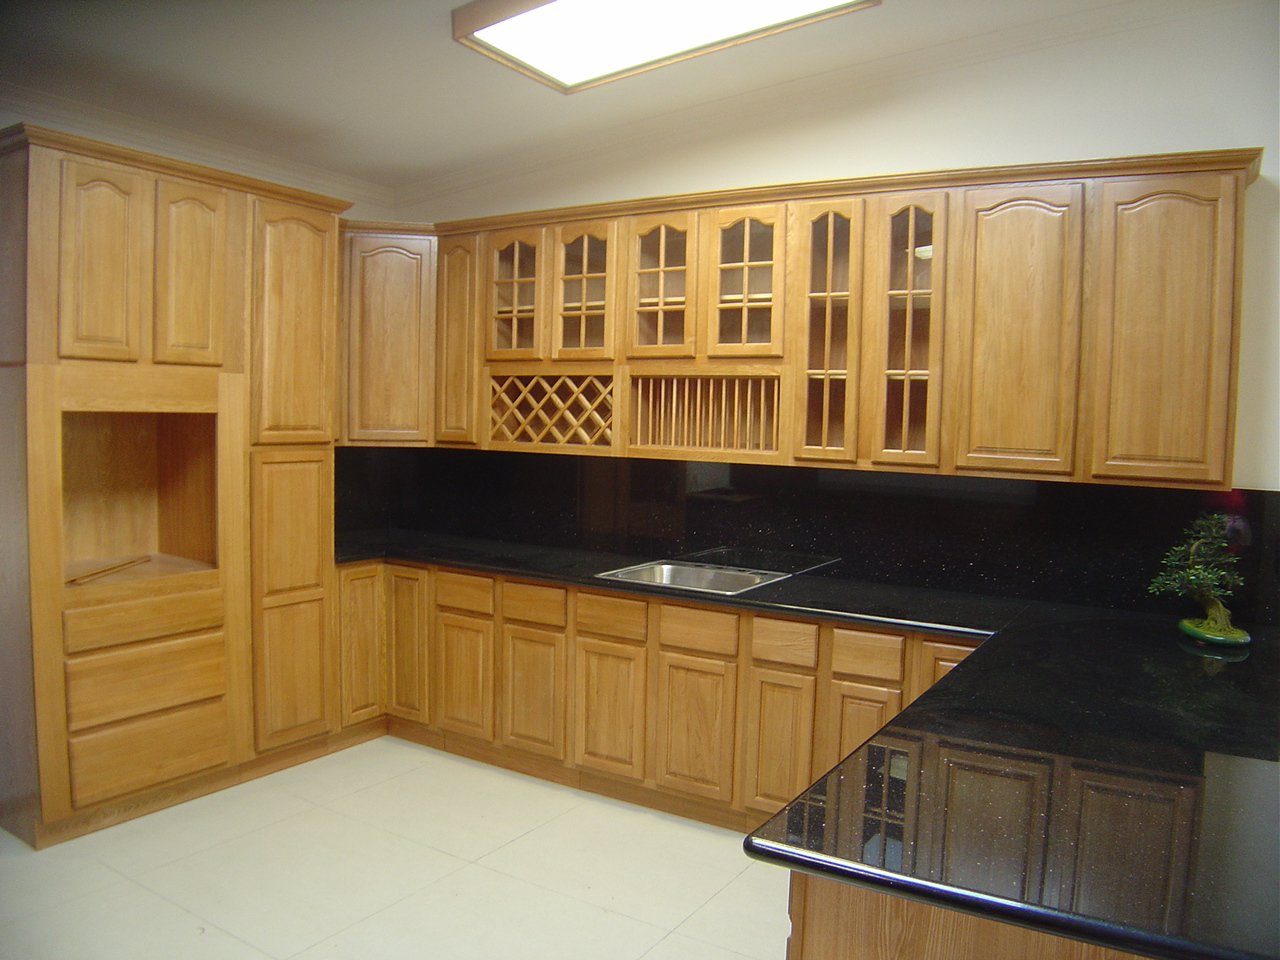 Great Kitchen Design Ideas with Oak Cabinets 1280 x 960 · 557 kB · jpeg